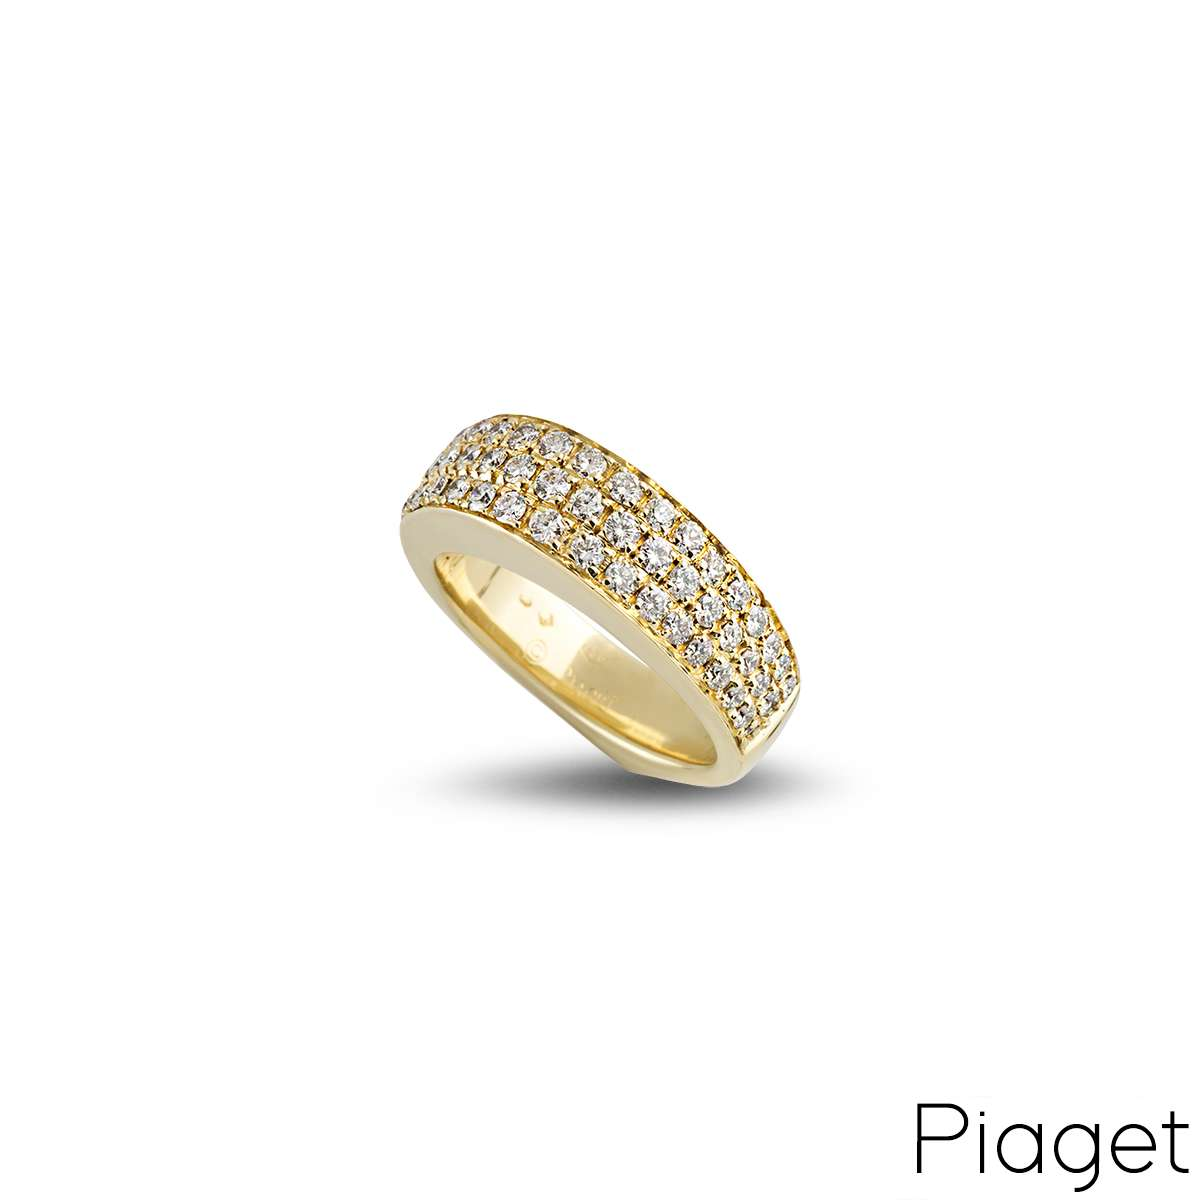 Piaget 18k Yellow Gold Diamond Set Dress Ring